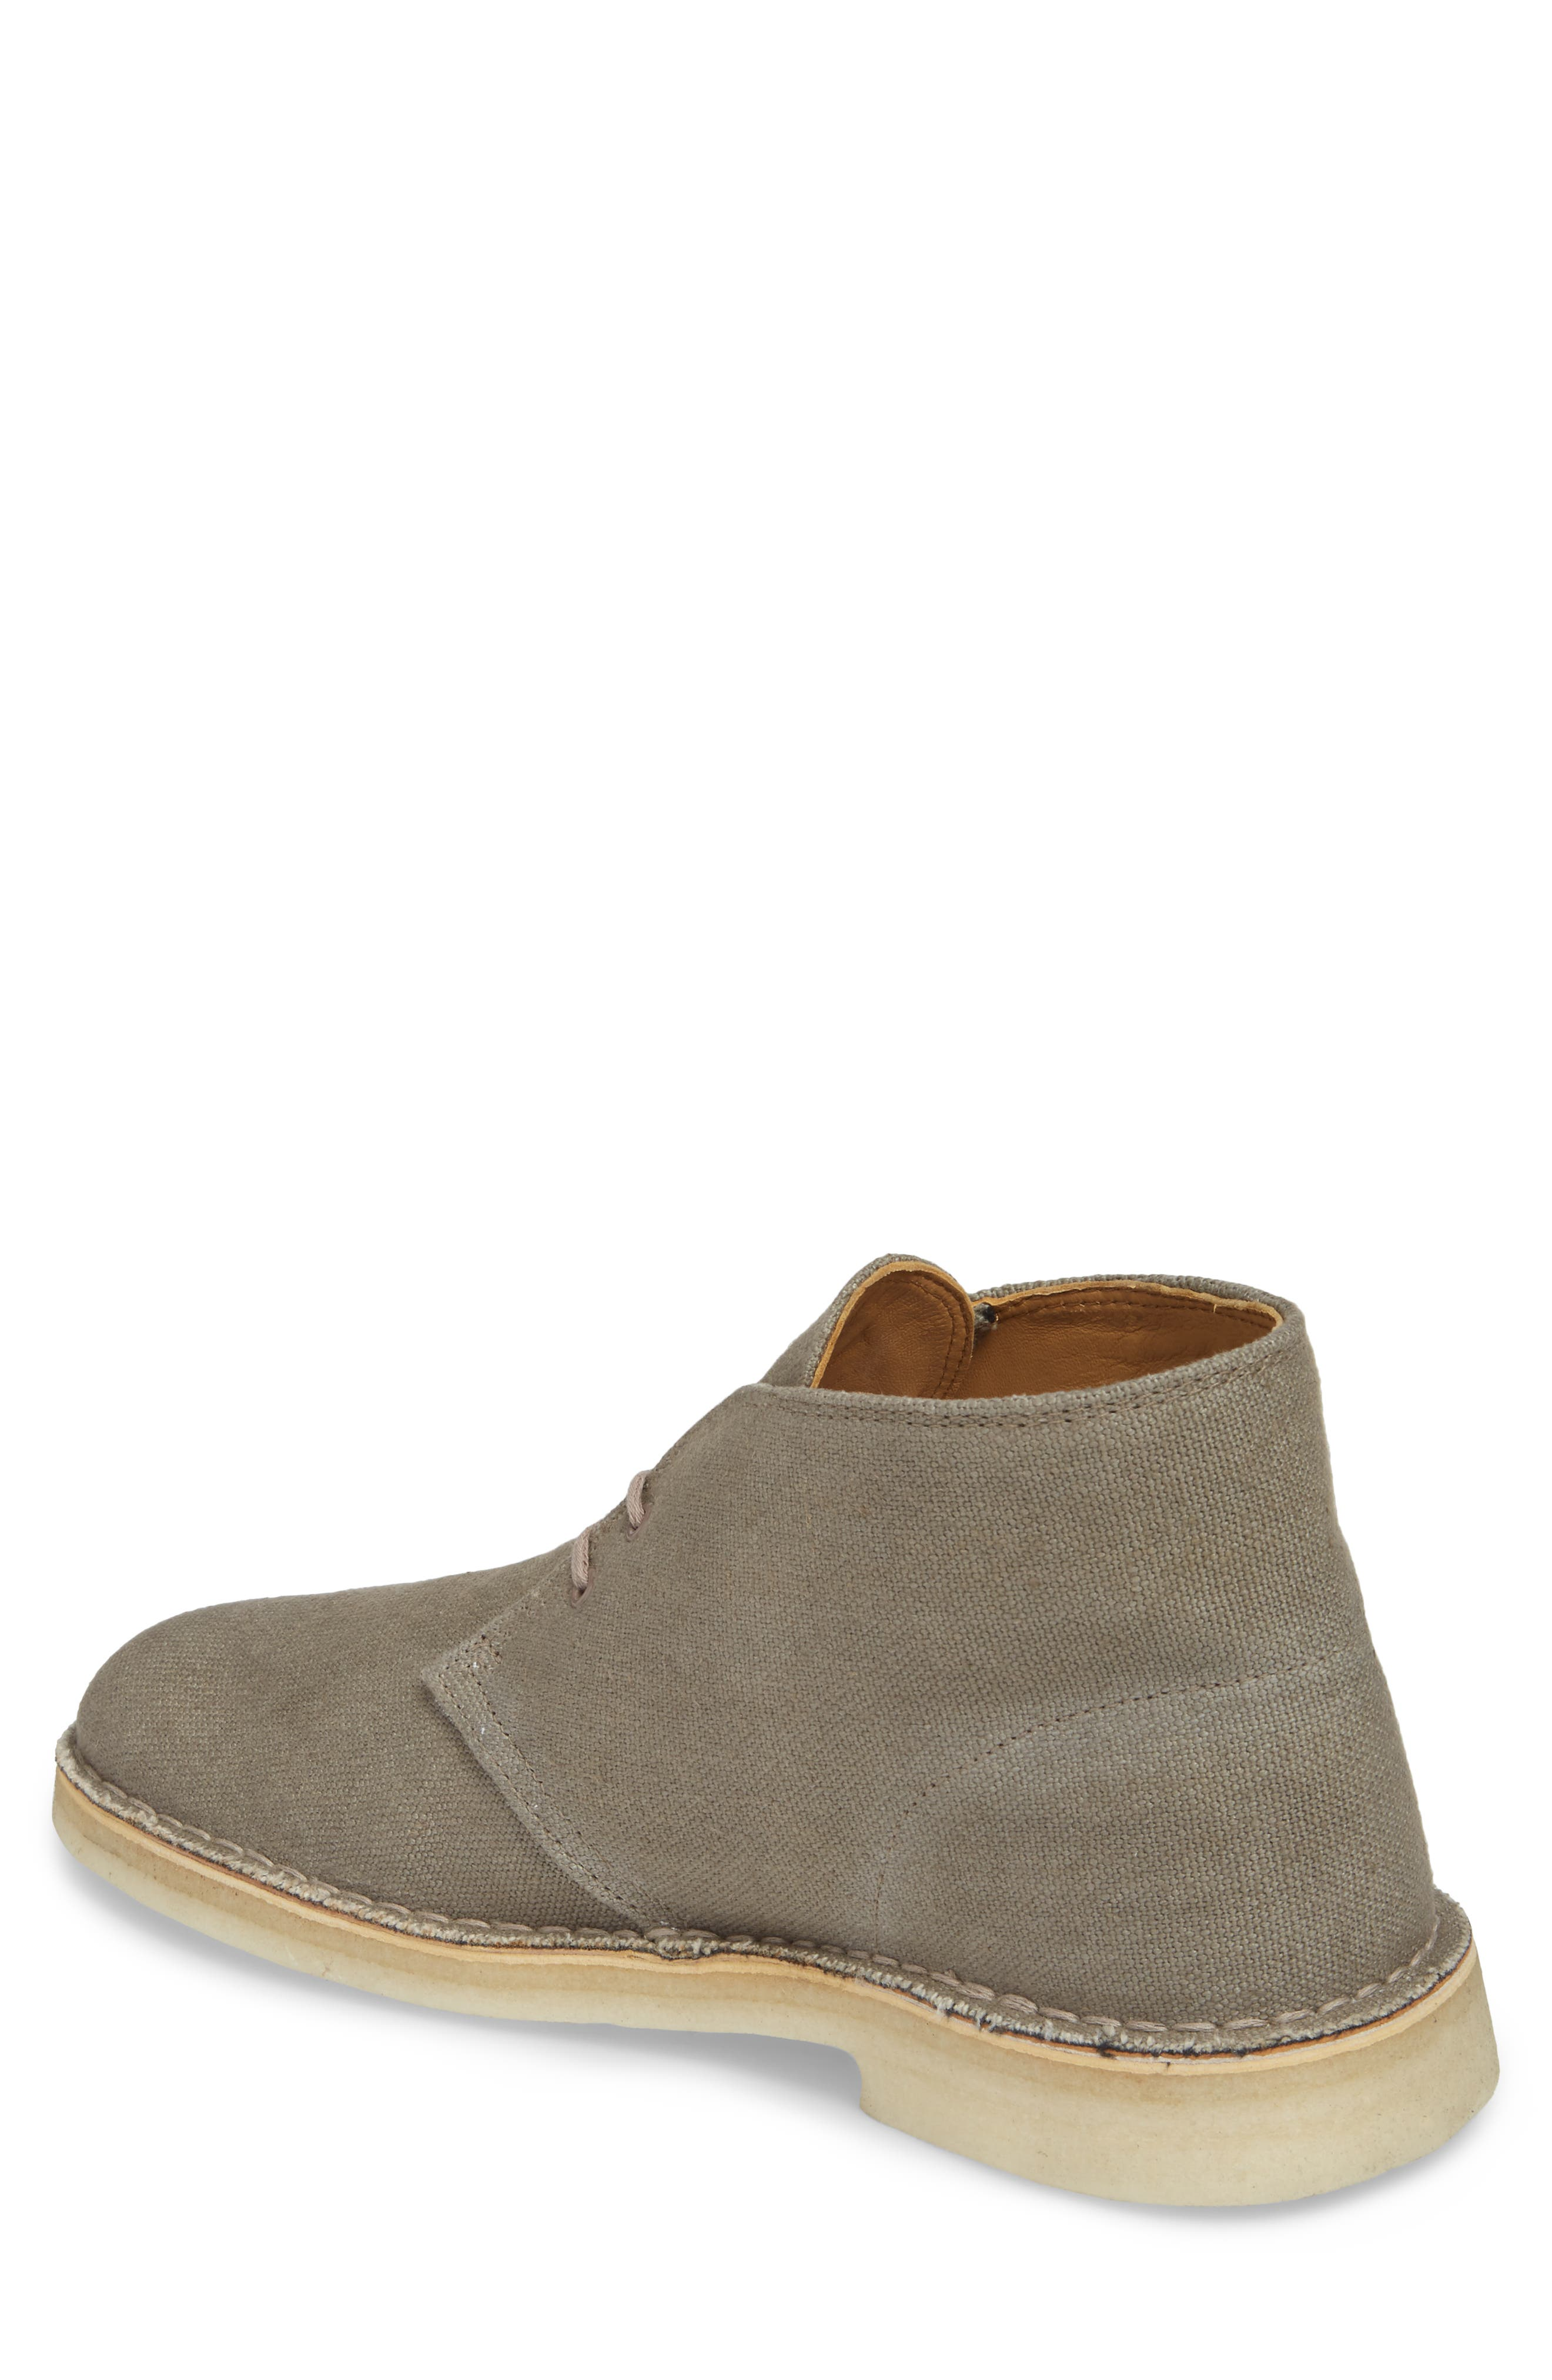 Clarks<sup>®</sup> Desert Chukka Boot,                             Alternate thumbnail 2, color,                             Taupe Canvas